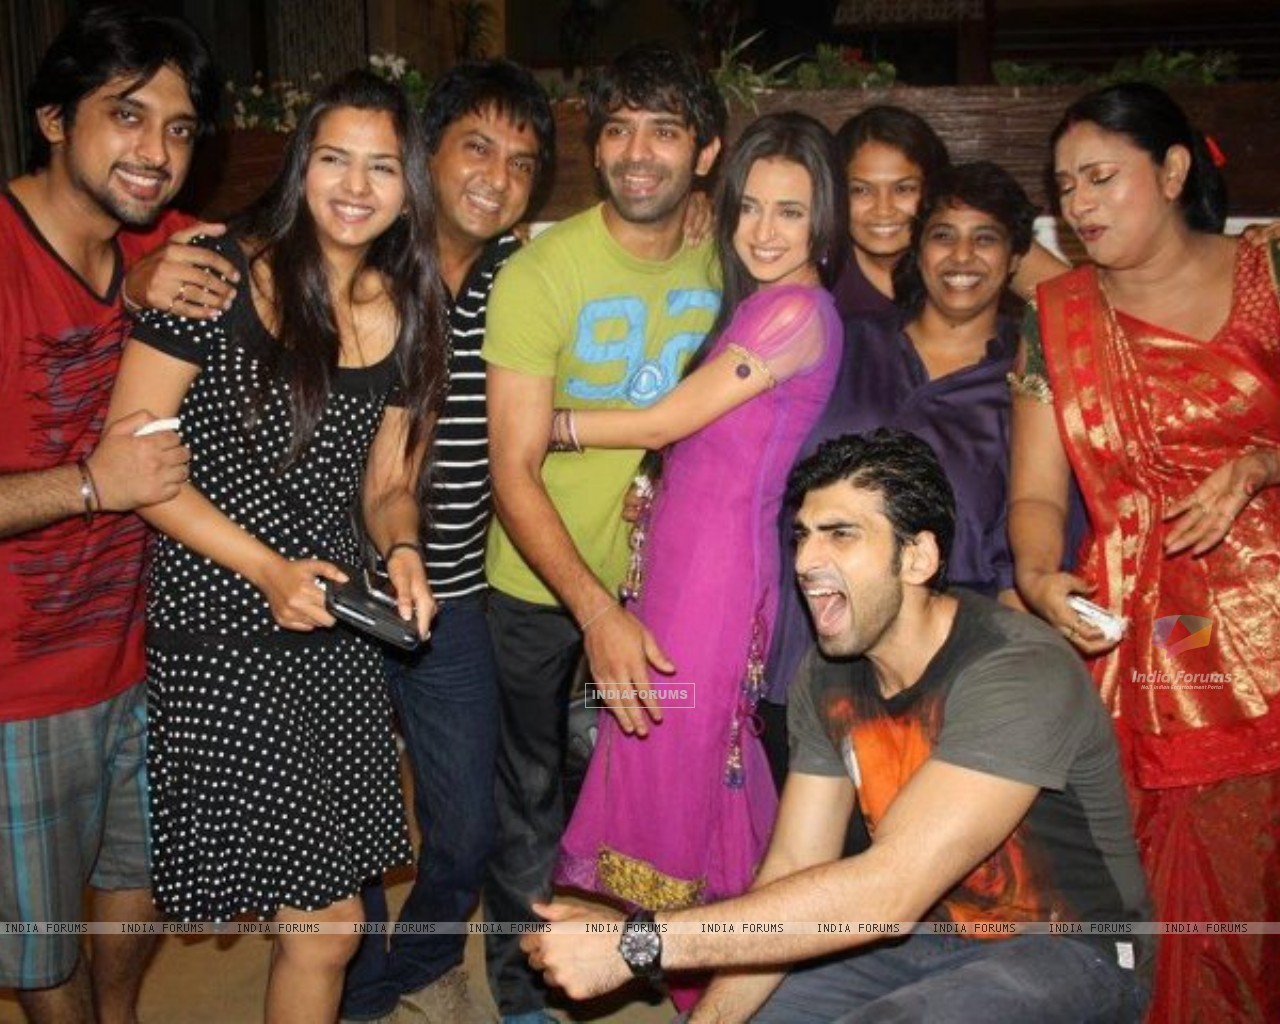 The cast and crew of Iss Pyaar Ko Kya Naam Doon? celebrating their one